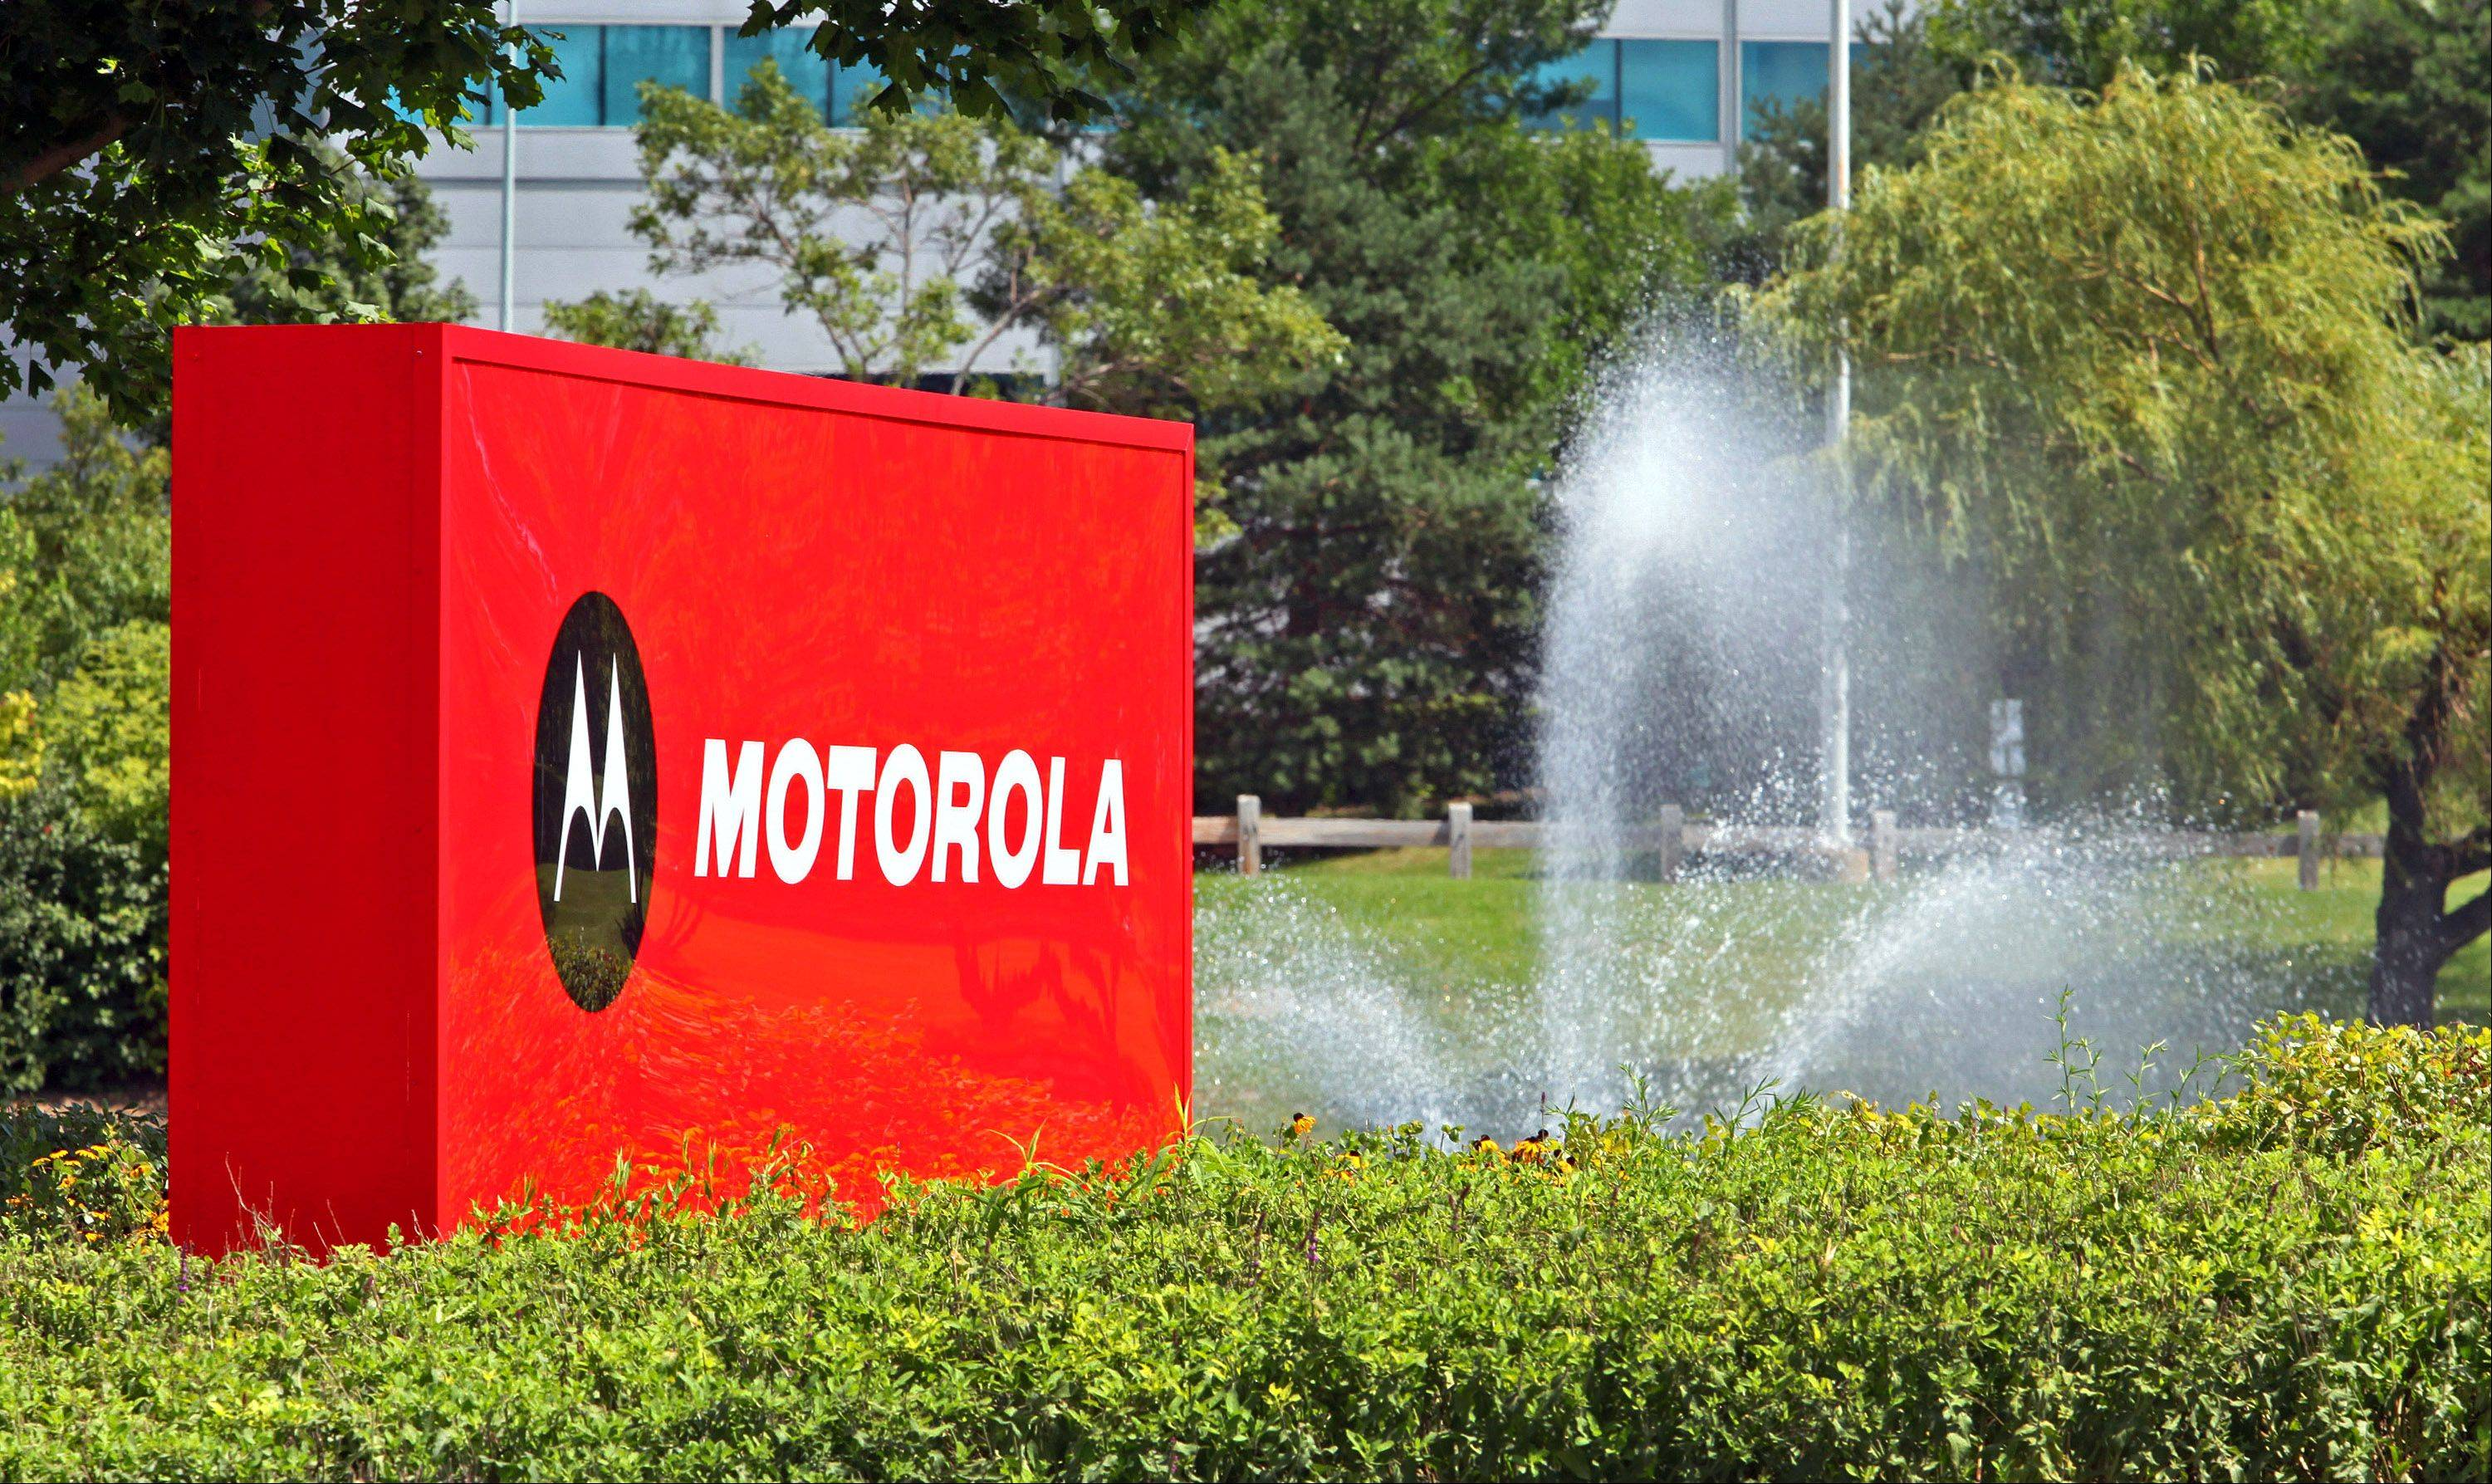 Libertyville-based Motorola Mobility Holdings Inc. has won a patent ruling allowing it to ban Microsoft Corp. from selling its Windows 7, Internet Explorer and Media Player software and Xbox gaming systems in Germany.